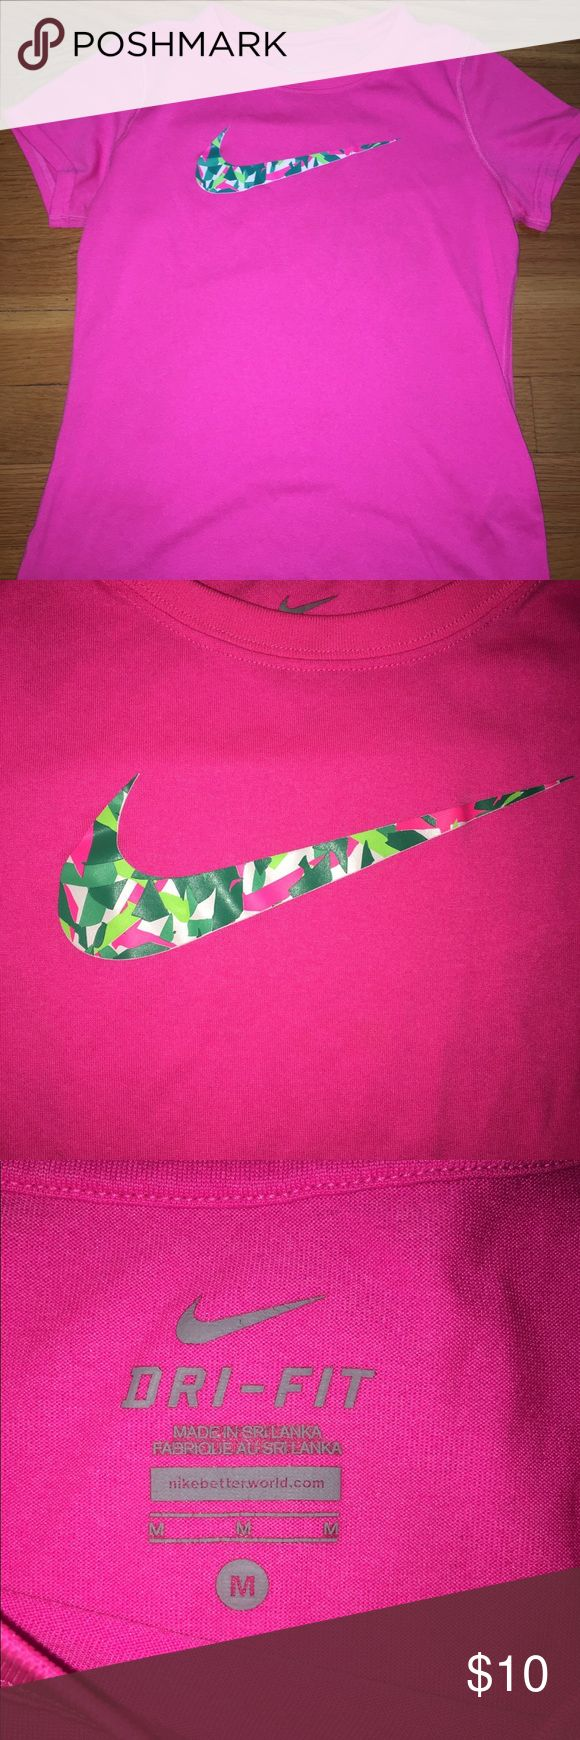 Girls Nike Short Sleeve Dryfit Shirt This Is a Girls Nike dry-fit short sleeve shirt! It's a pink short sleeve shirt with the Nike logo on the middle of the shirt on the front side! The Nike logo has green, light green, pink, and white geometrical features within it. This shirt is a side medium (M) in the girls department! NOT women! This shirt is also dry-fit, not cotton. Hope you like it! ❤️ Nike Shirts & Tops Tees - Short Sleeve